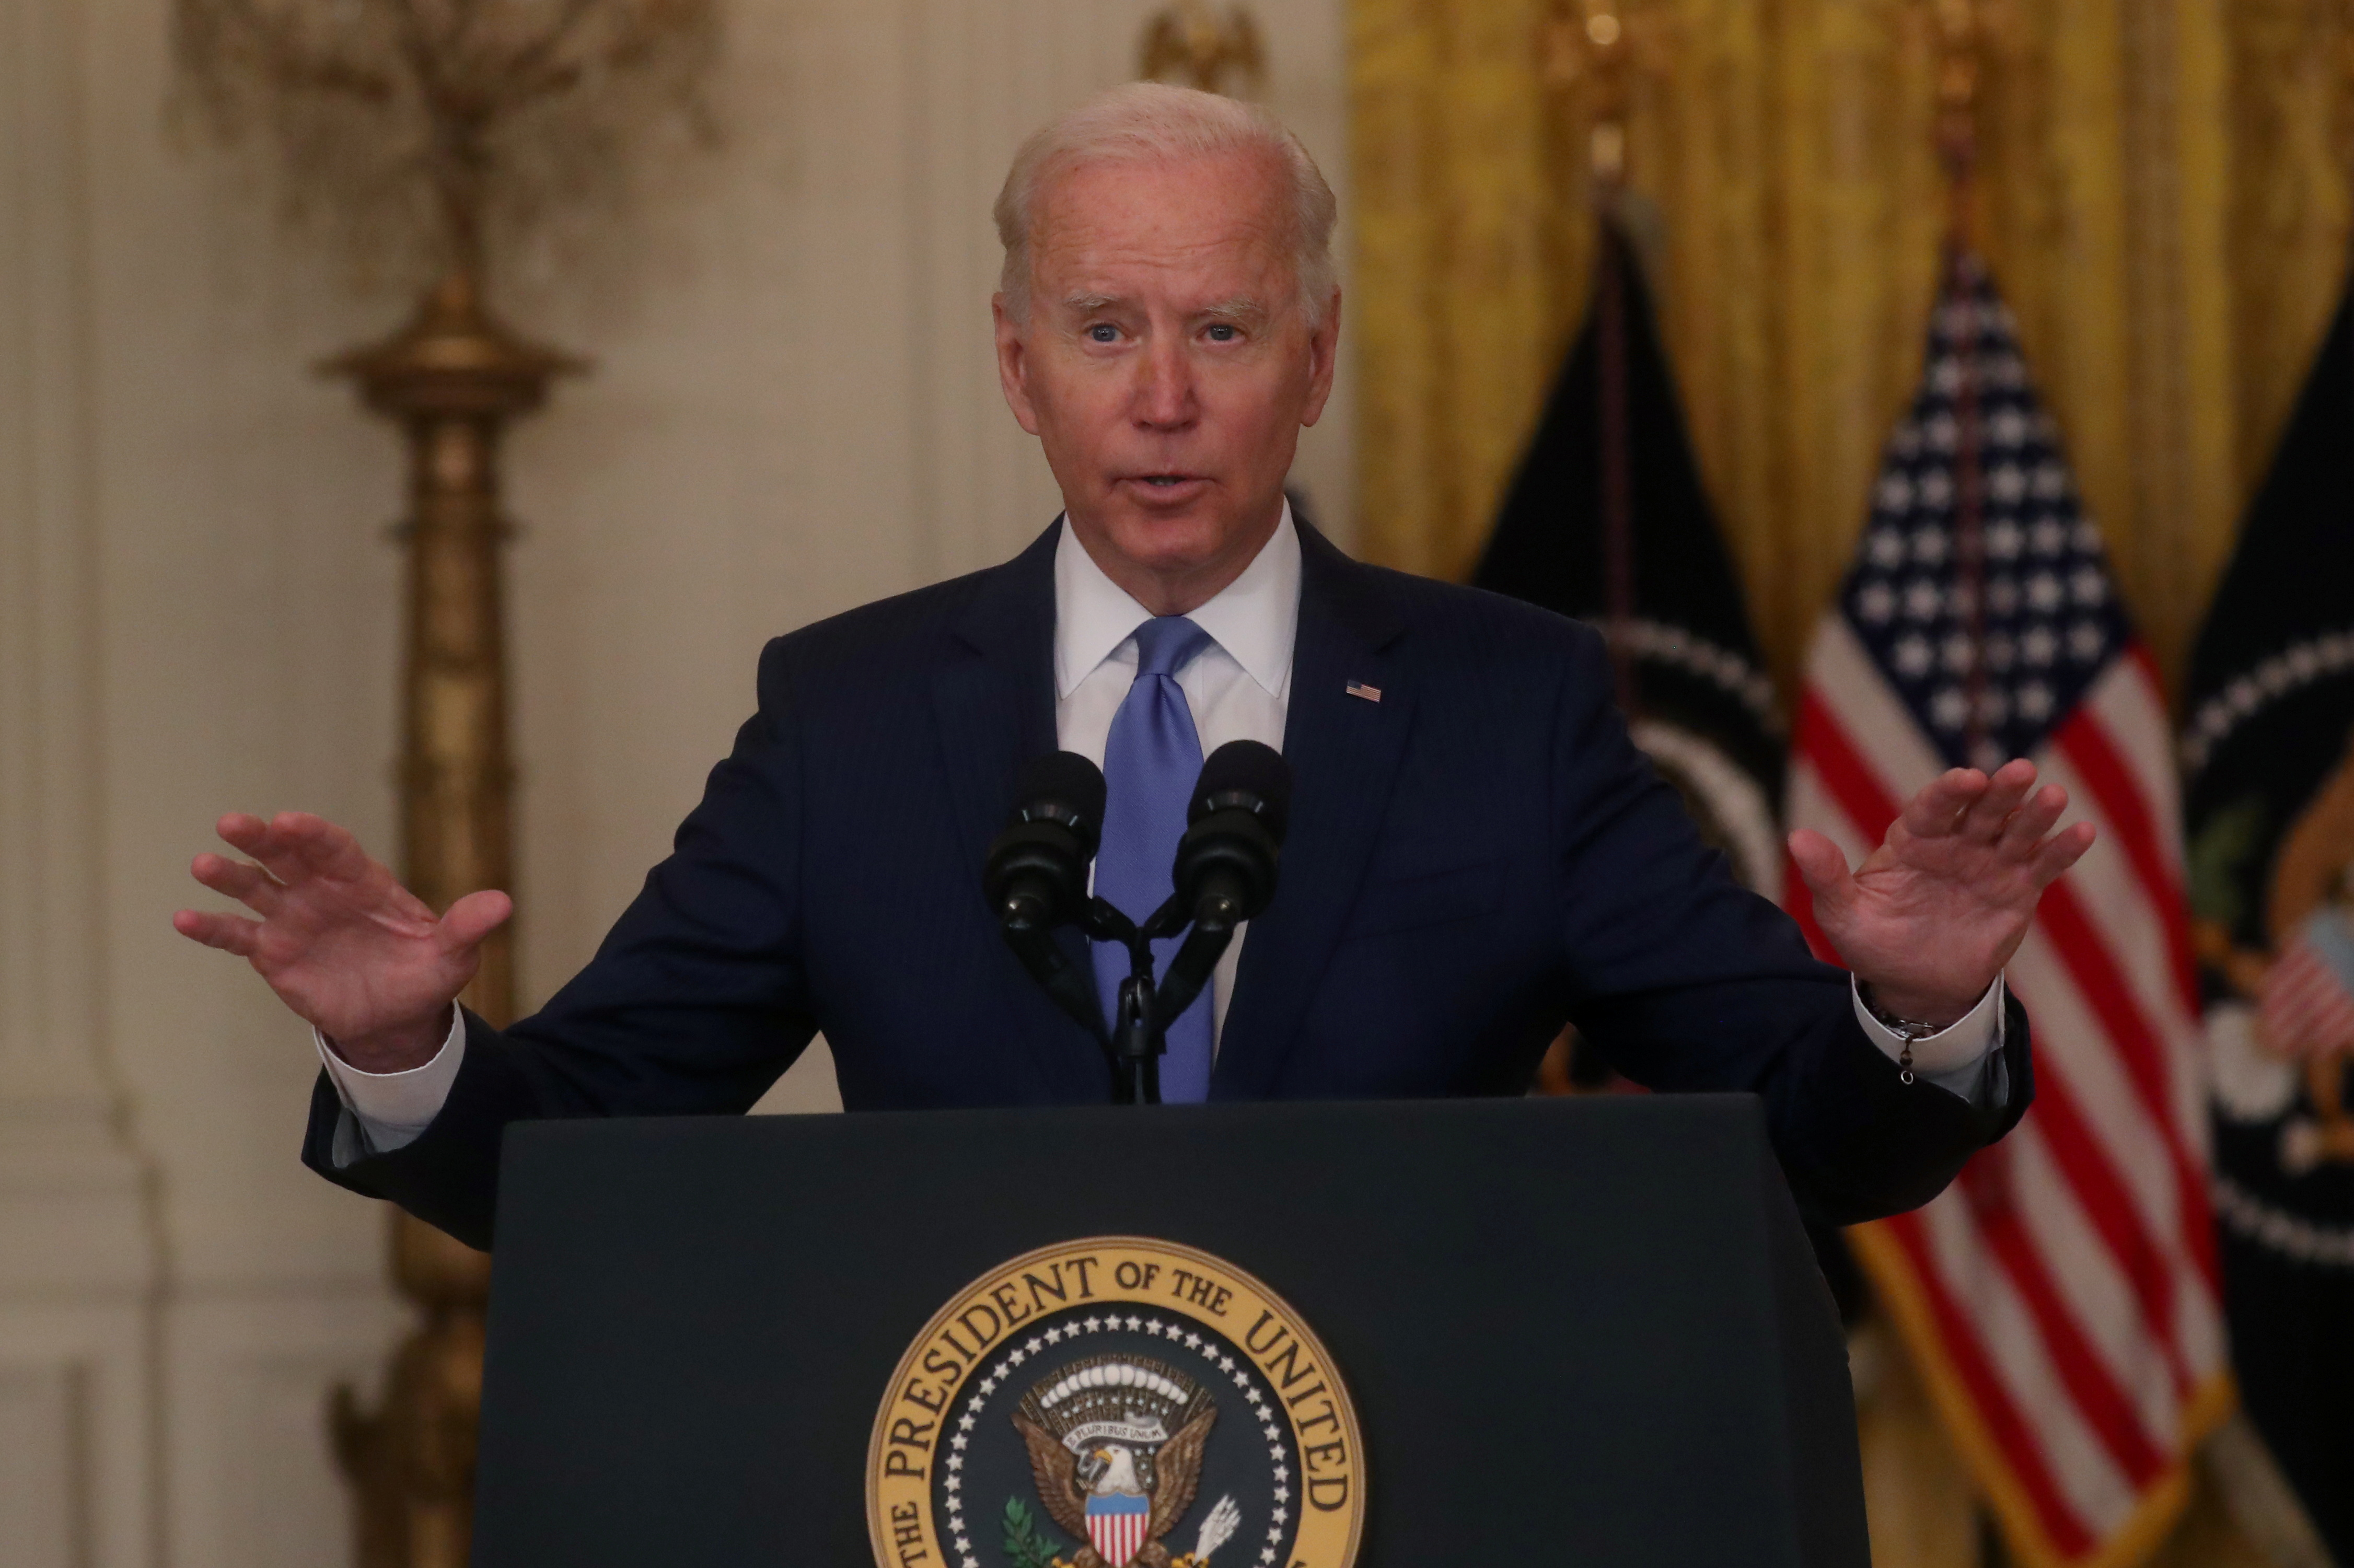 U.S. President Joe Biden delivers remarks on the economy during a speech in the East Room of the White House in Washington, U.S., September 16, 2021. REUTERS/Leah Millis